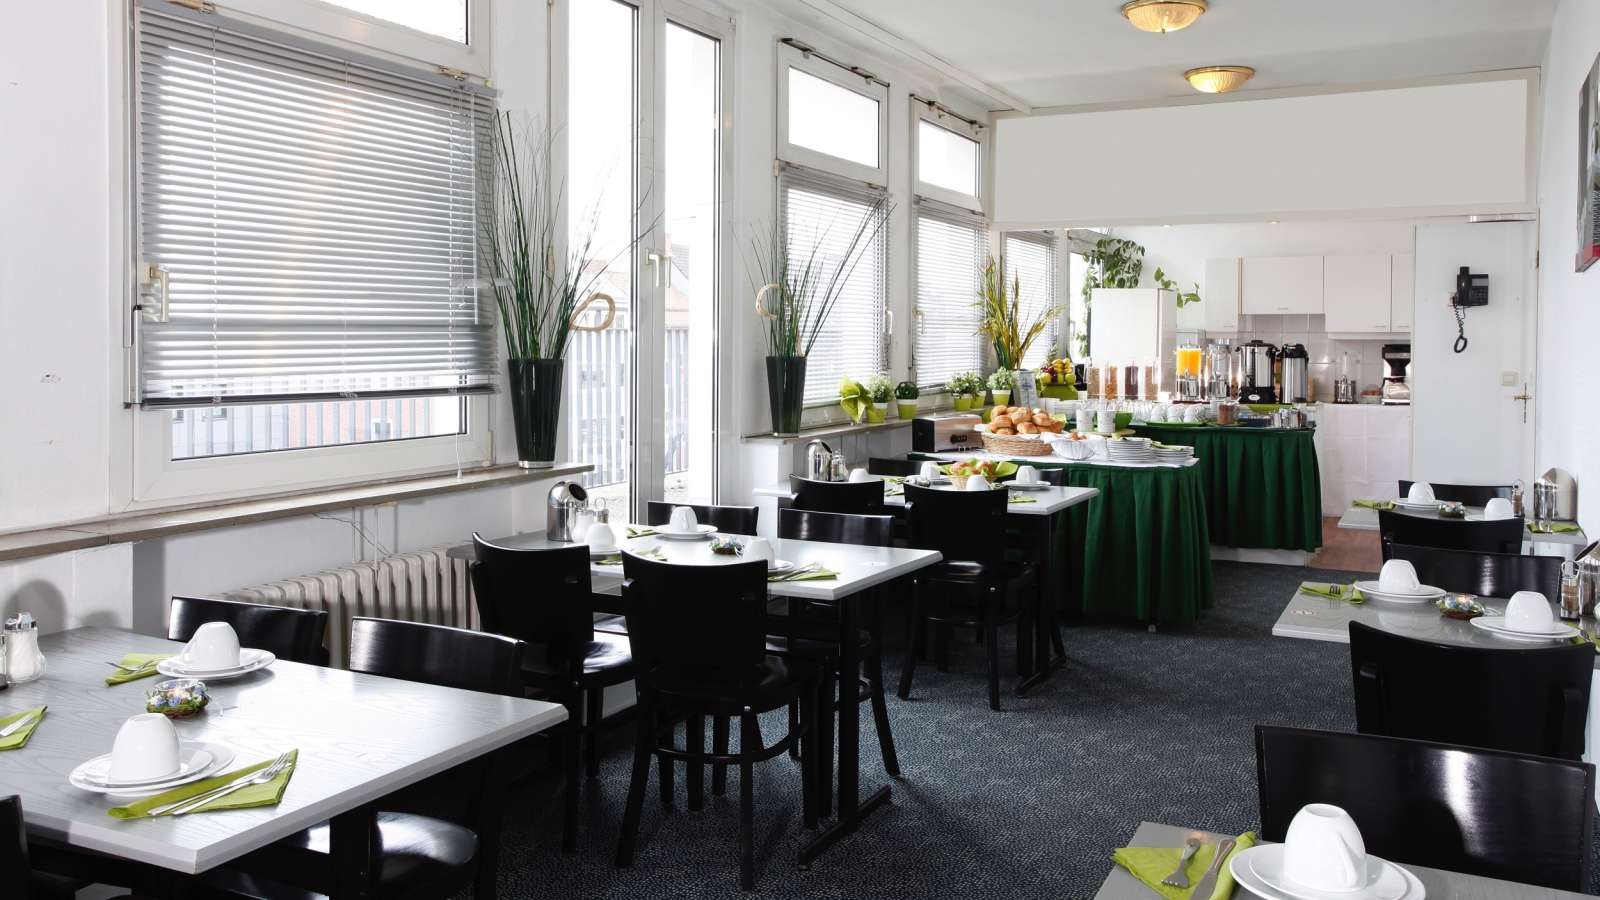 The breakfast room of Centro Hotel Citygate in Hamburg